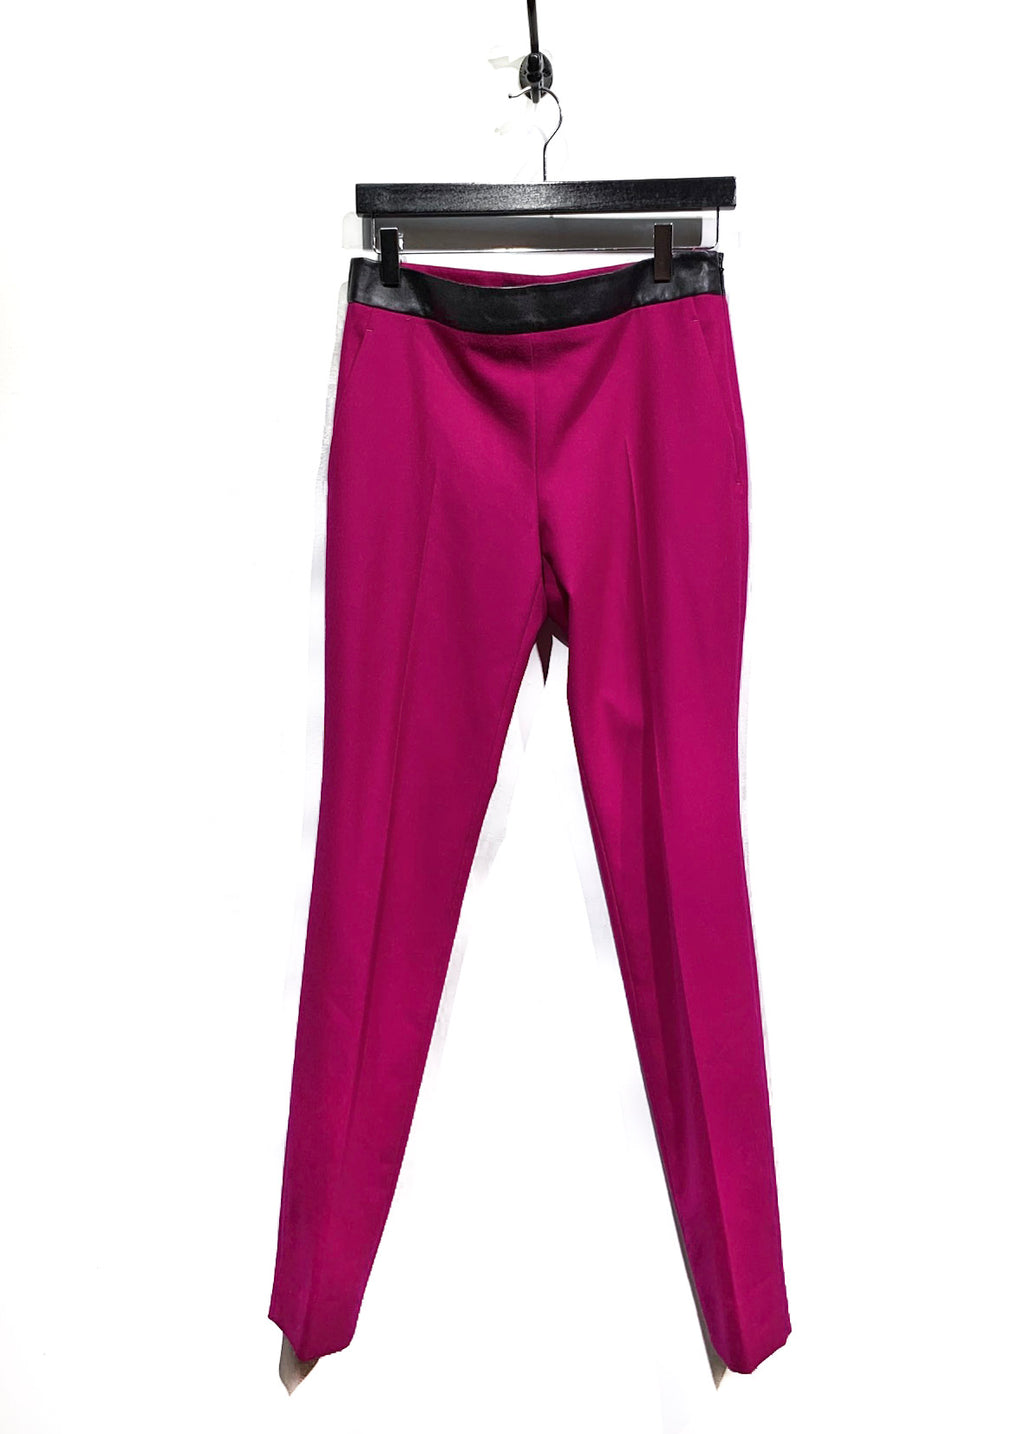 Gucci Fuschia Leather Waist Accent Straight Leg Pants